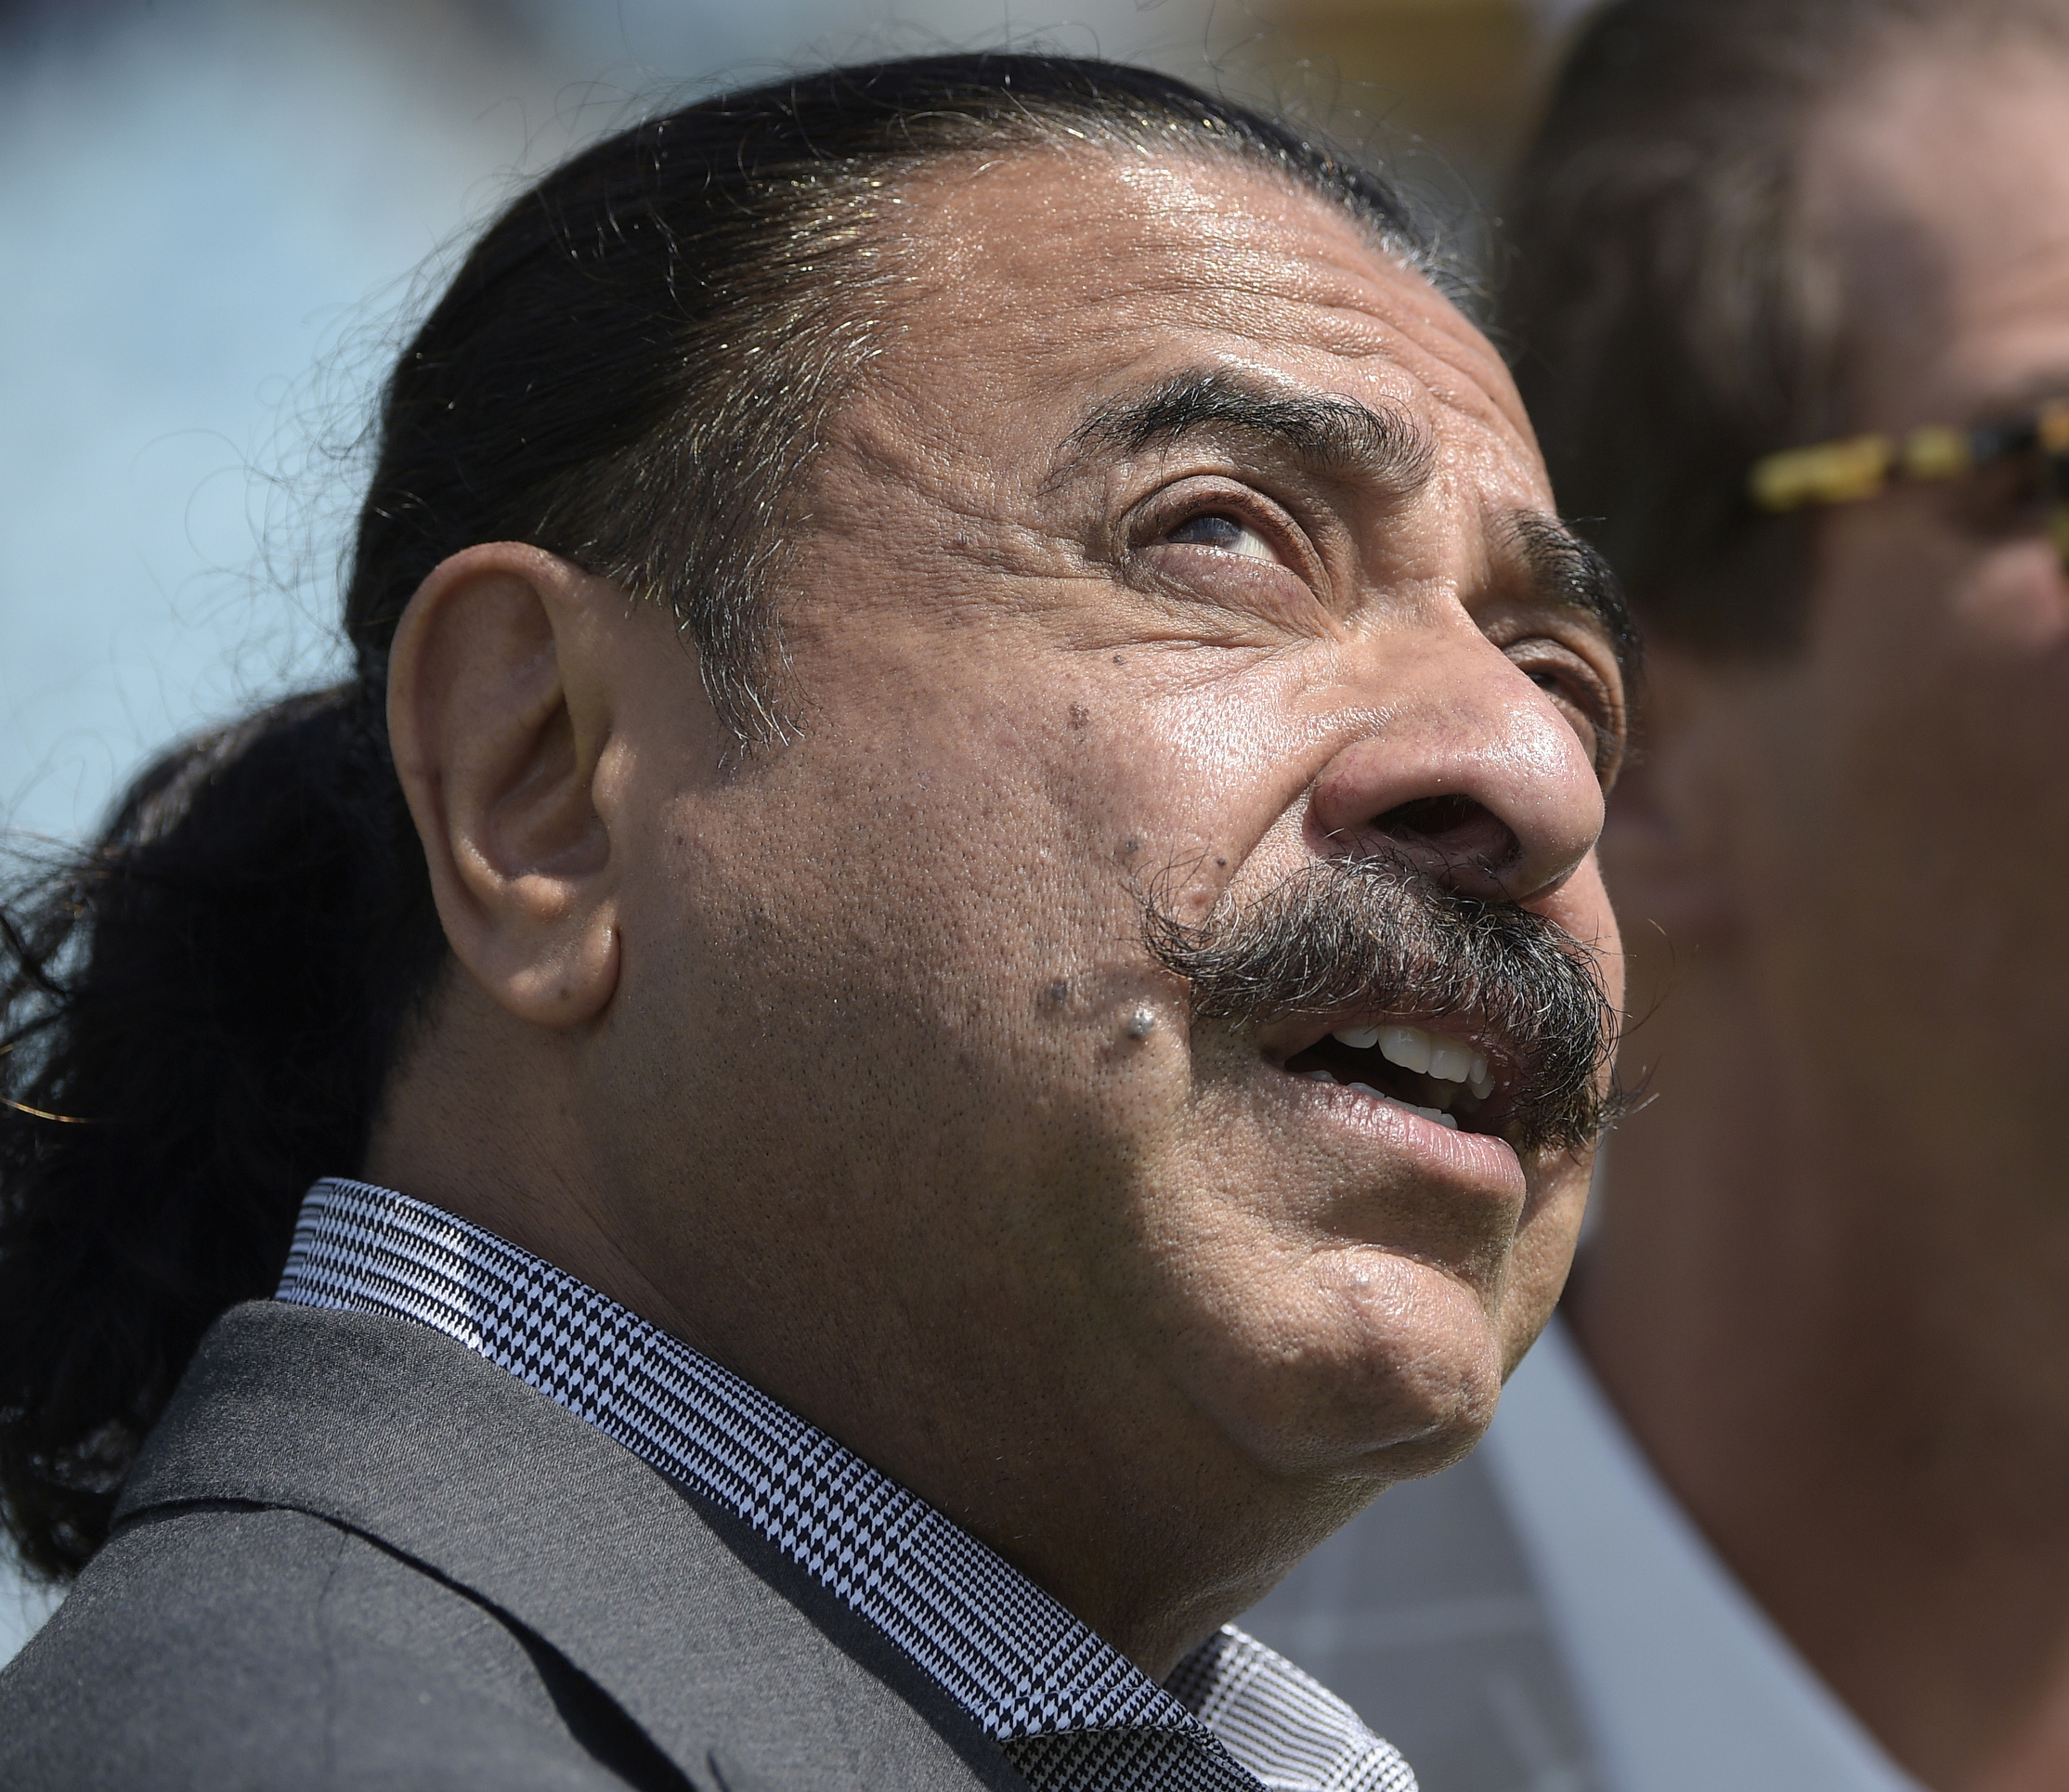 FILE - In this Sept. 25, 2016, file photo, Jacksonville Jaguars owner Shad Khan is shown before an NFL football game in Jacksonville, Fla.  Jaguars owner Shad Khan made a rare appearance in front of the team a day after one of the most embarrassing losses